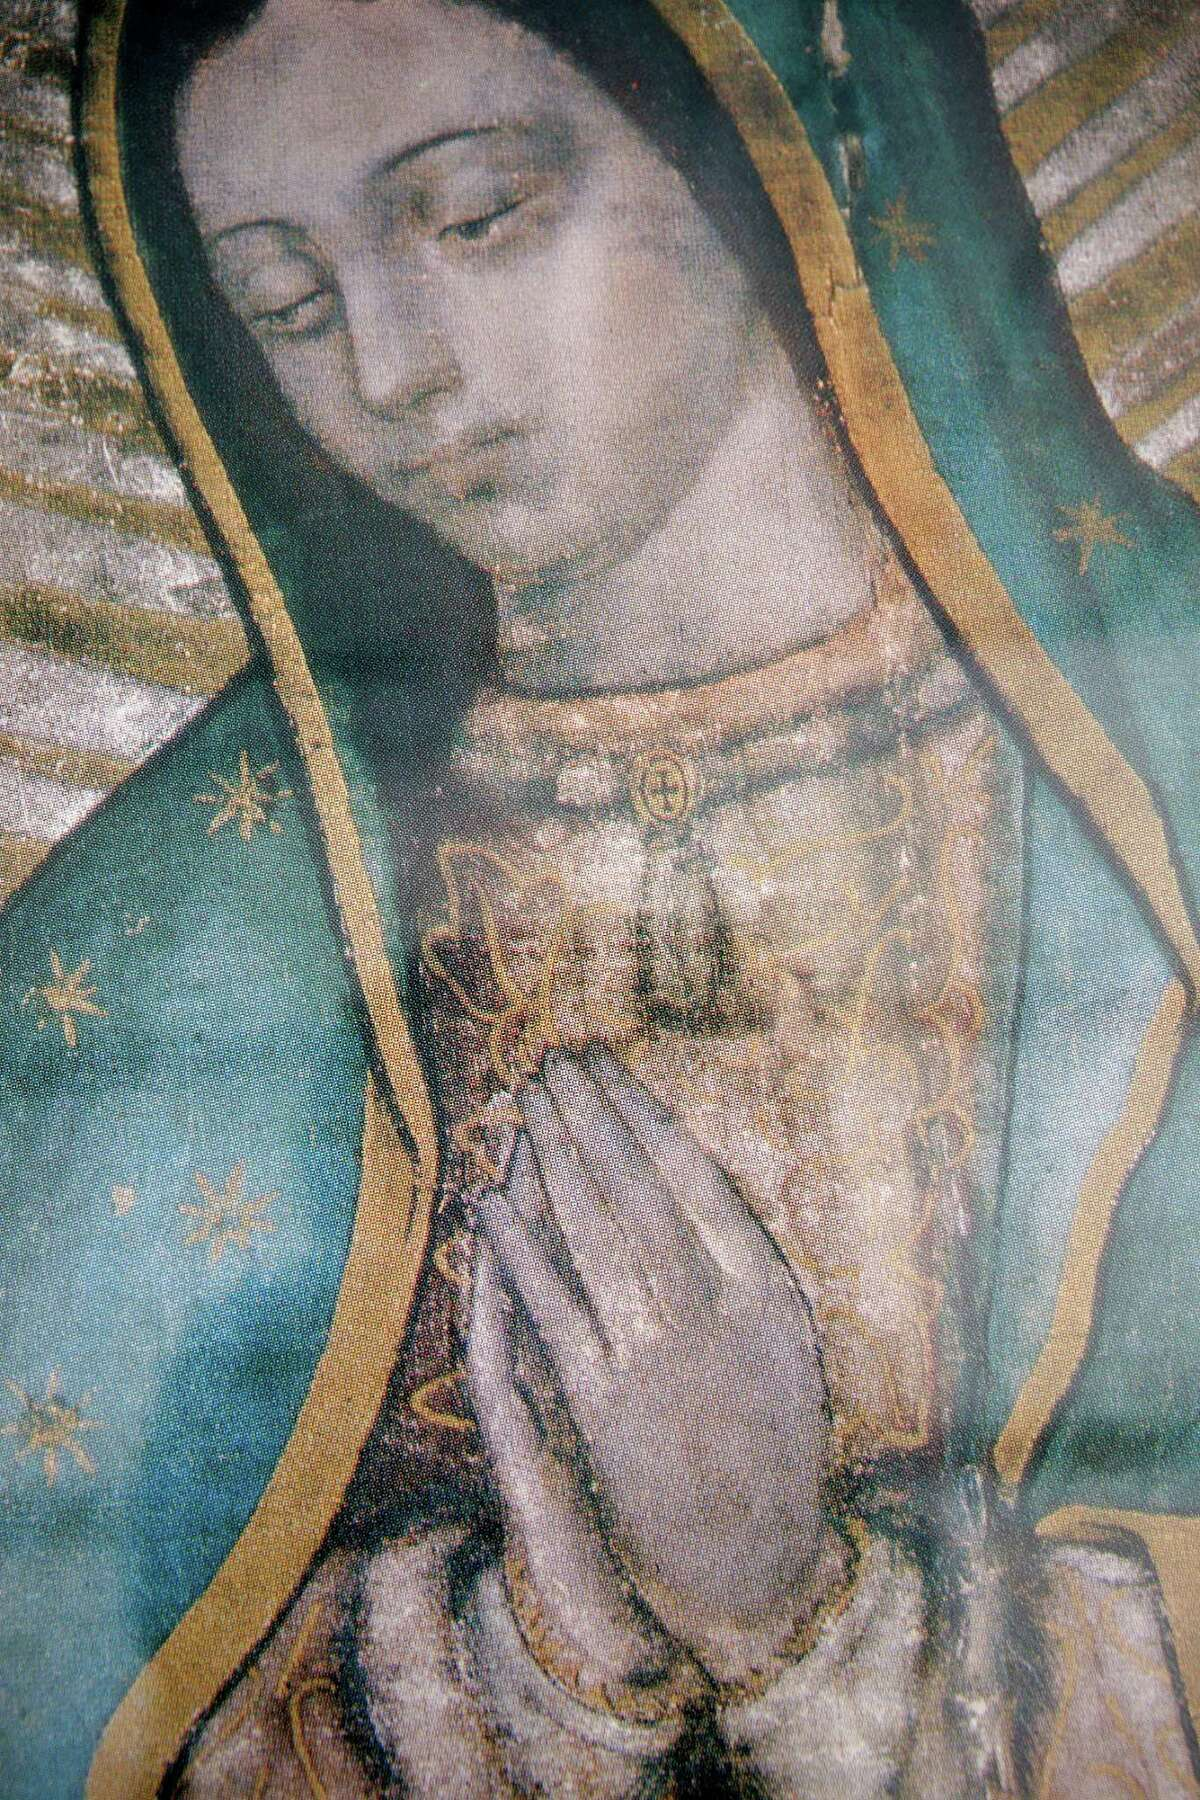 A detail of a copy of a painting of Our Lady of Guadalupe on Friday, Dec. 9, 2016, in Houston. The association has had the painting of Our Lady of Guadalupe since 2008.